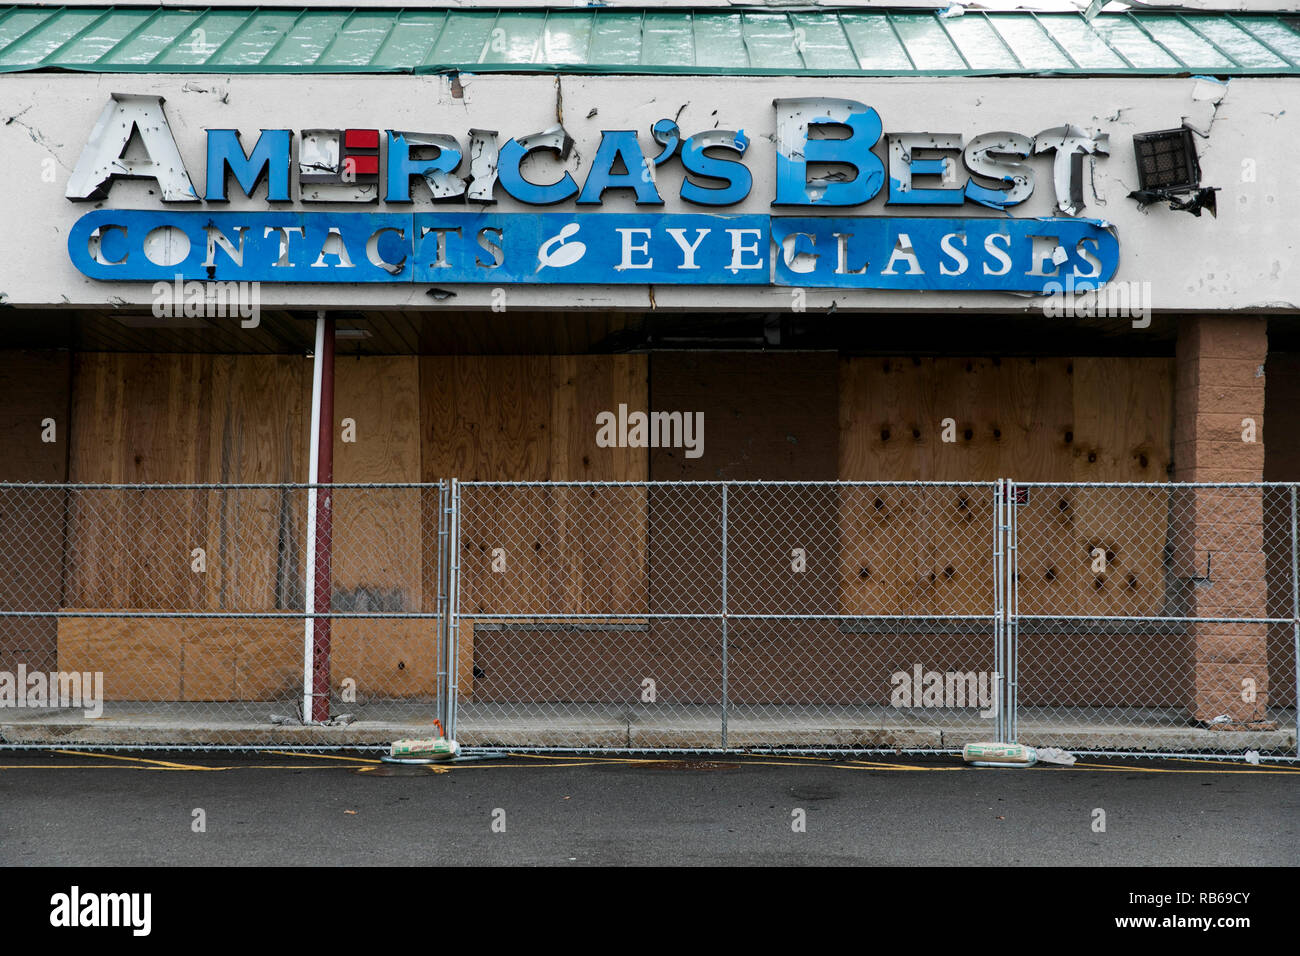 A logo sign outside of a closed America's Best Contacts & Eyeglasses retail store in Wilkes-Barre, Pennsylvania, on December 30, 2018. - Stock Image